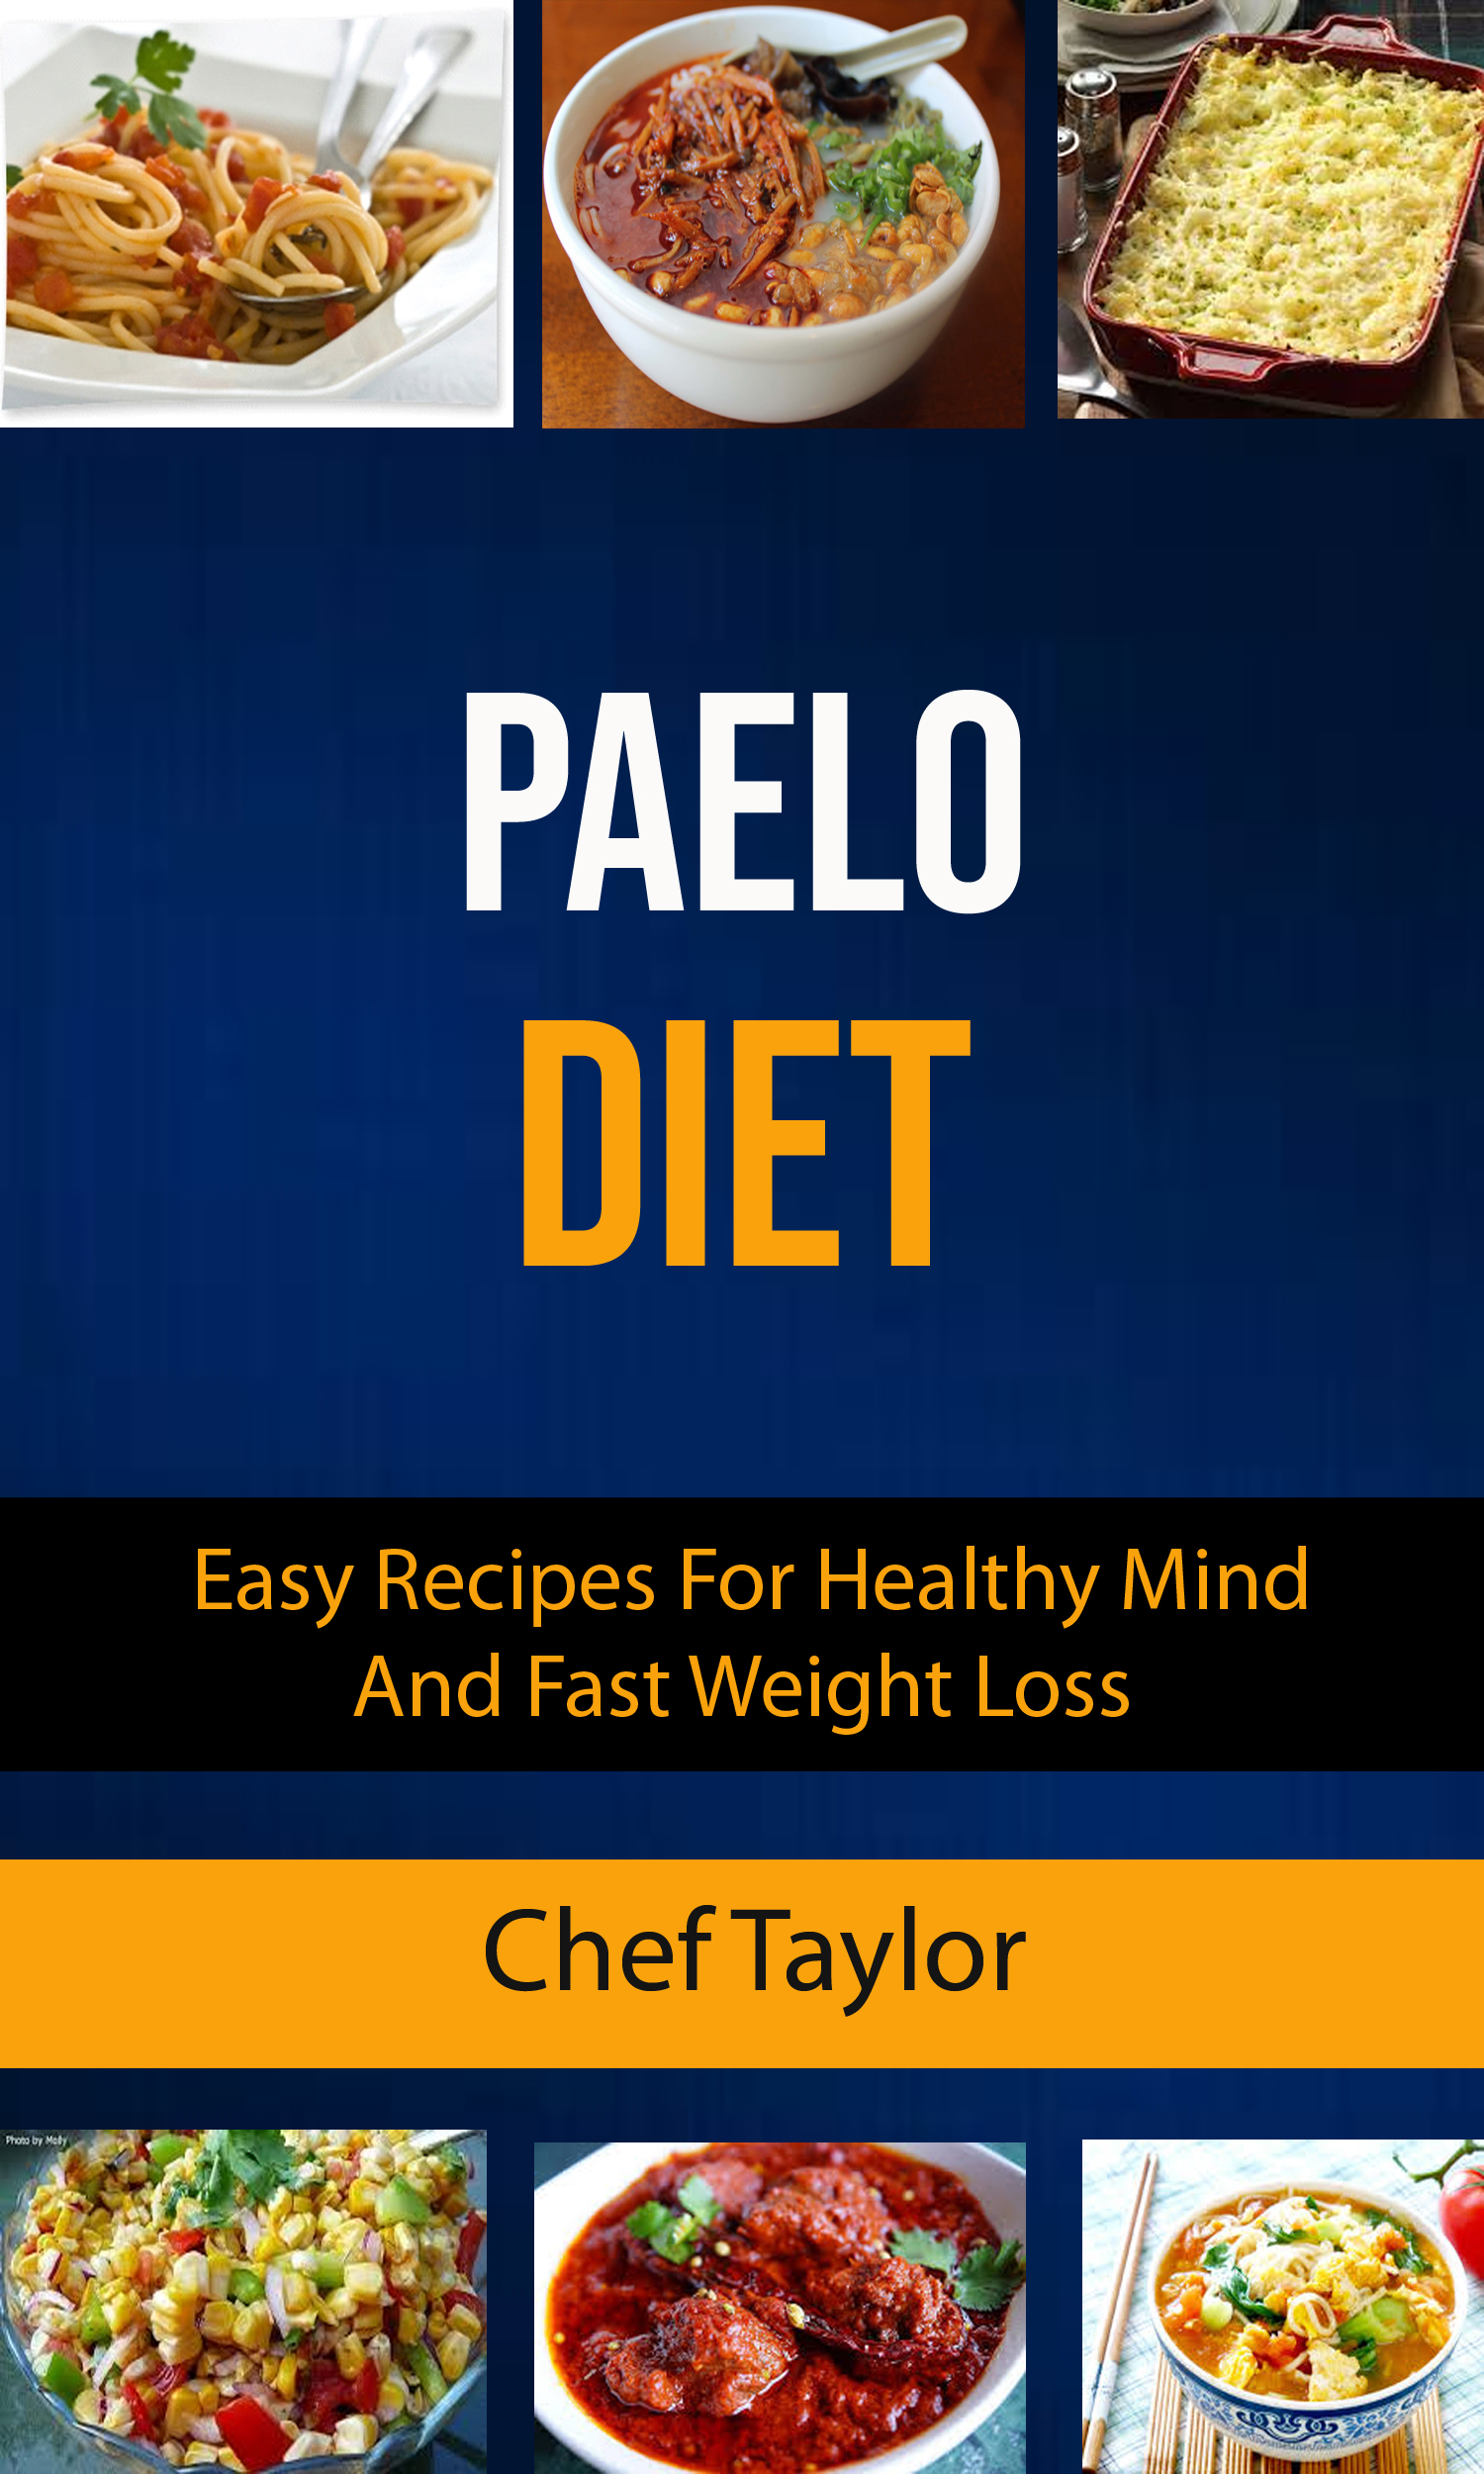 Paelo diet: easy recipes for healthy mind and fast weight loss